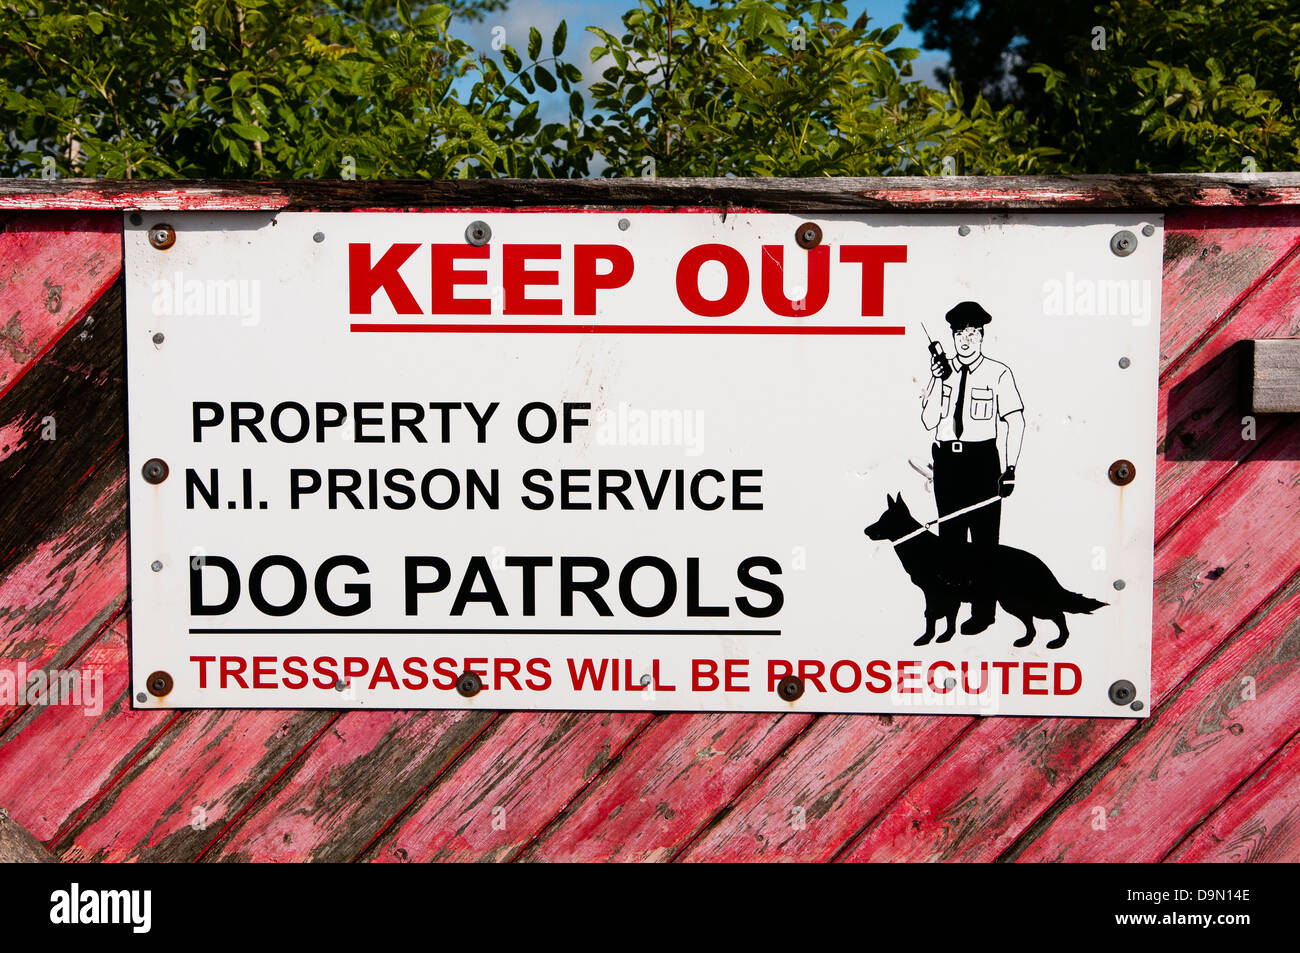 Keep out sign at prison in Northern Ireland - Stock Image